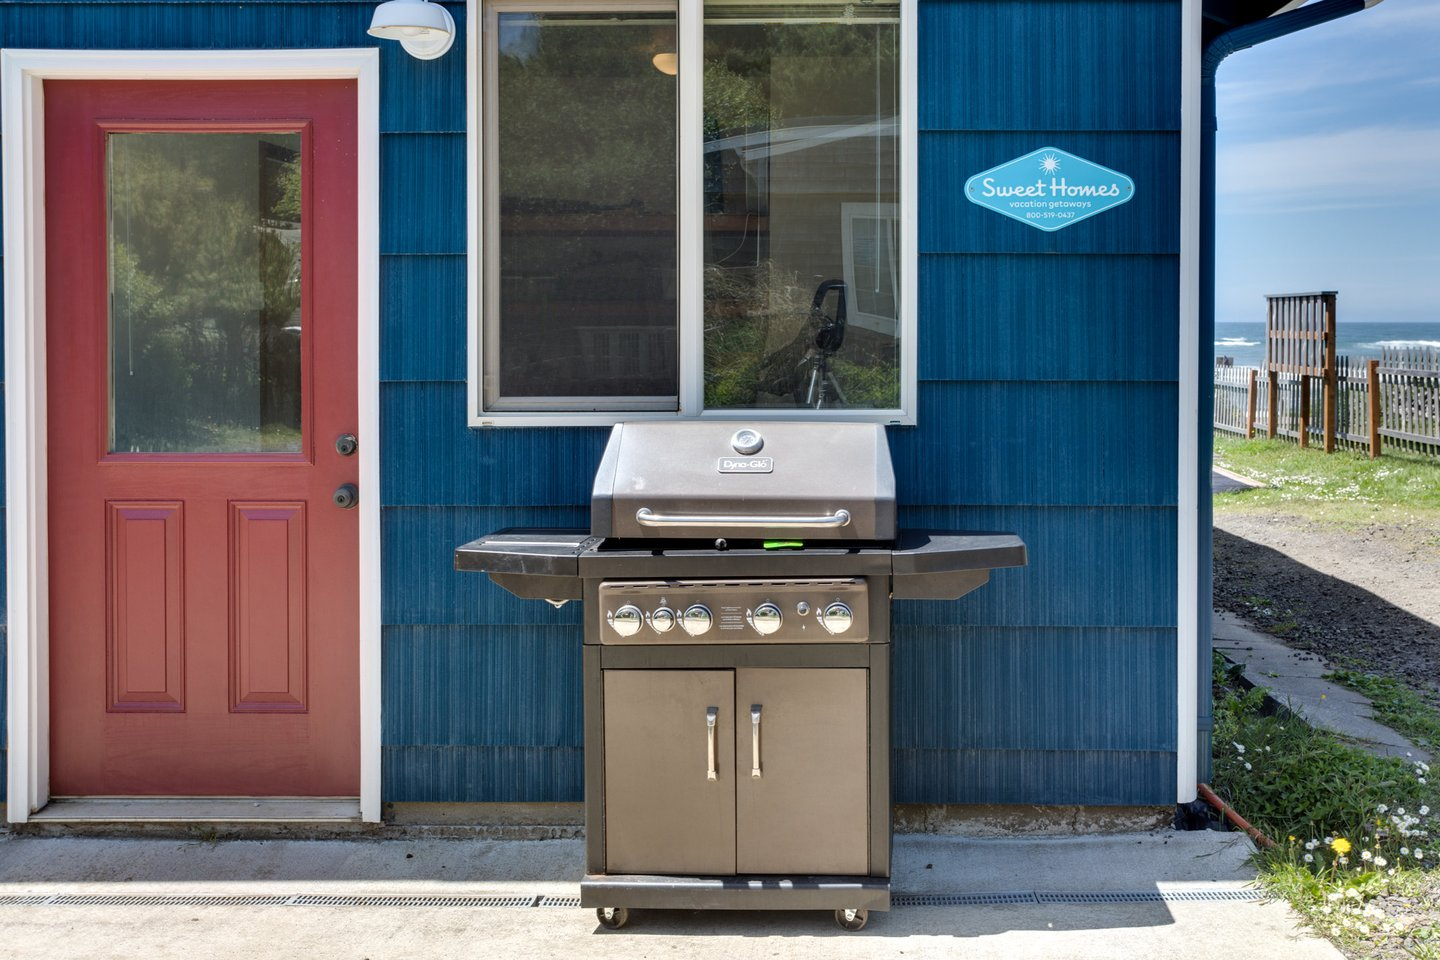 This grill is waiting for you to bring home the catch of the day!